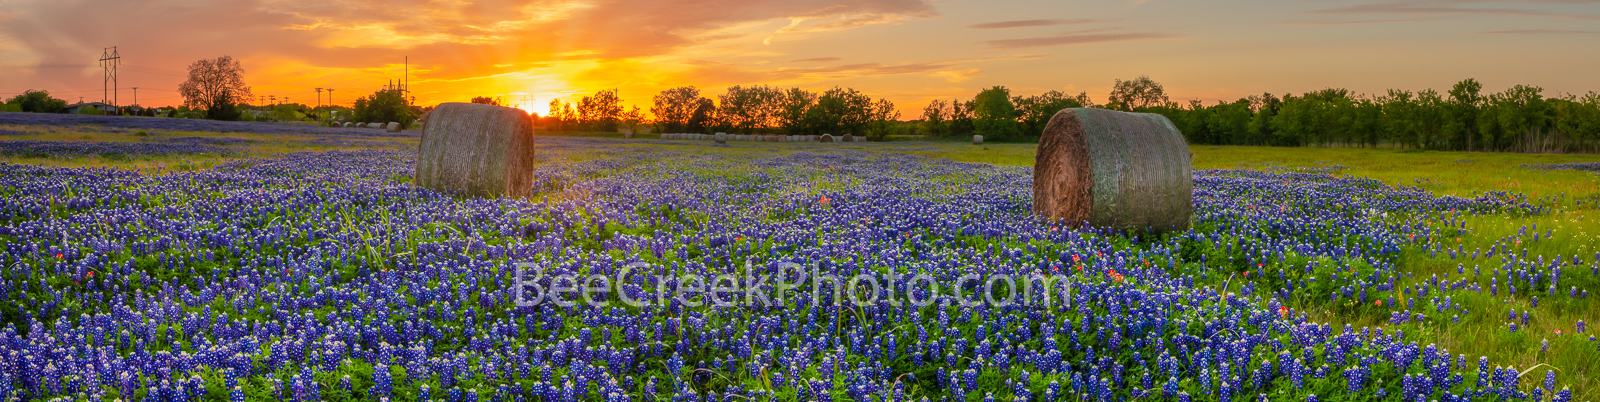 Sunset Bluebonnets and Haybales Pano  - Texas Bluebonnets Images - We were lucky to capture this wonderful sunset over this field...